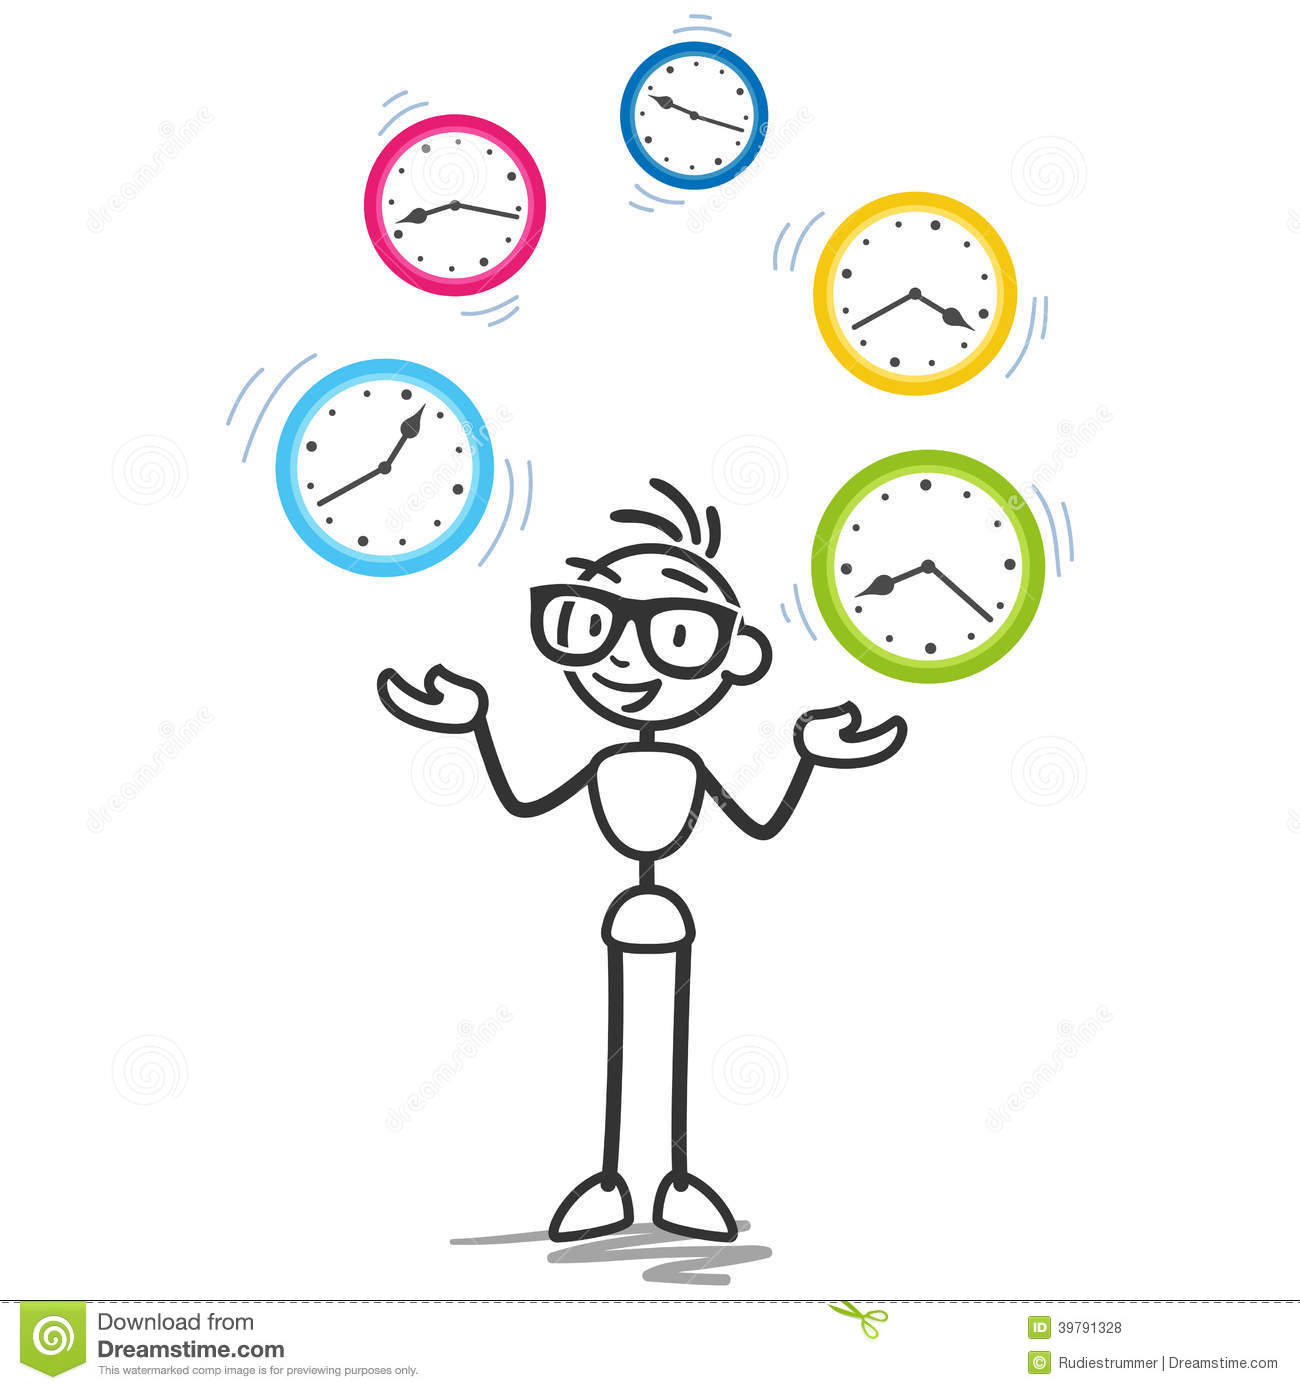 Stickman Time Management Productivity Sc-Stickman time management productivity schedule-6